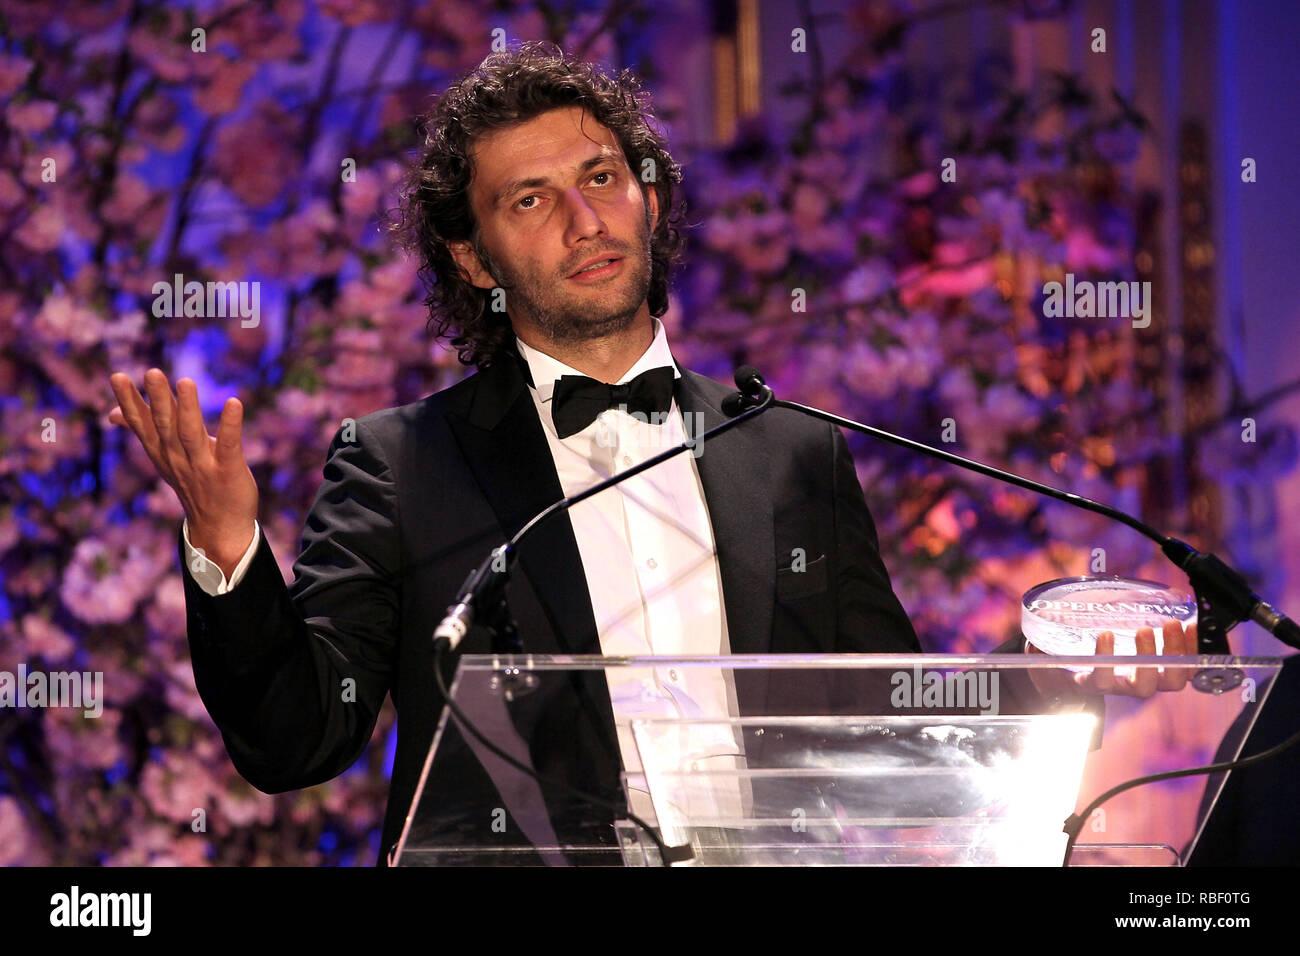 Jonas Kaufmann Stock Photos & Jonas Kaufmann Stock Images